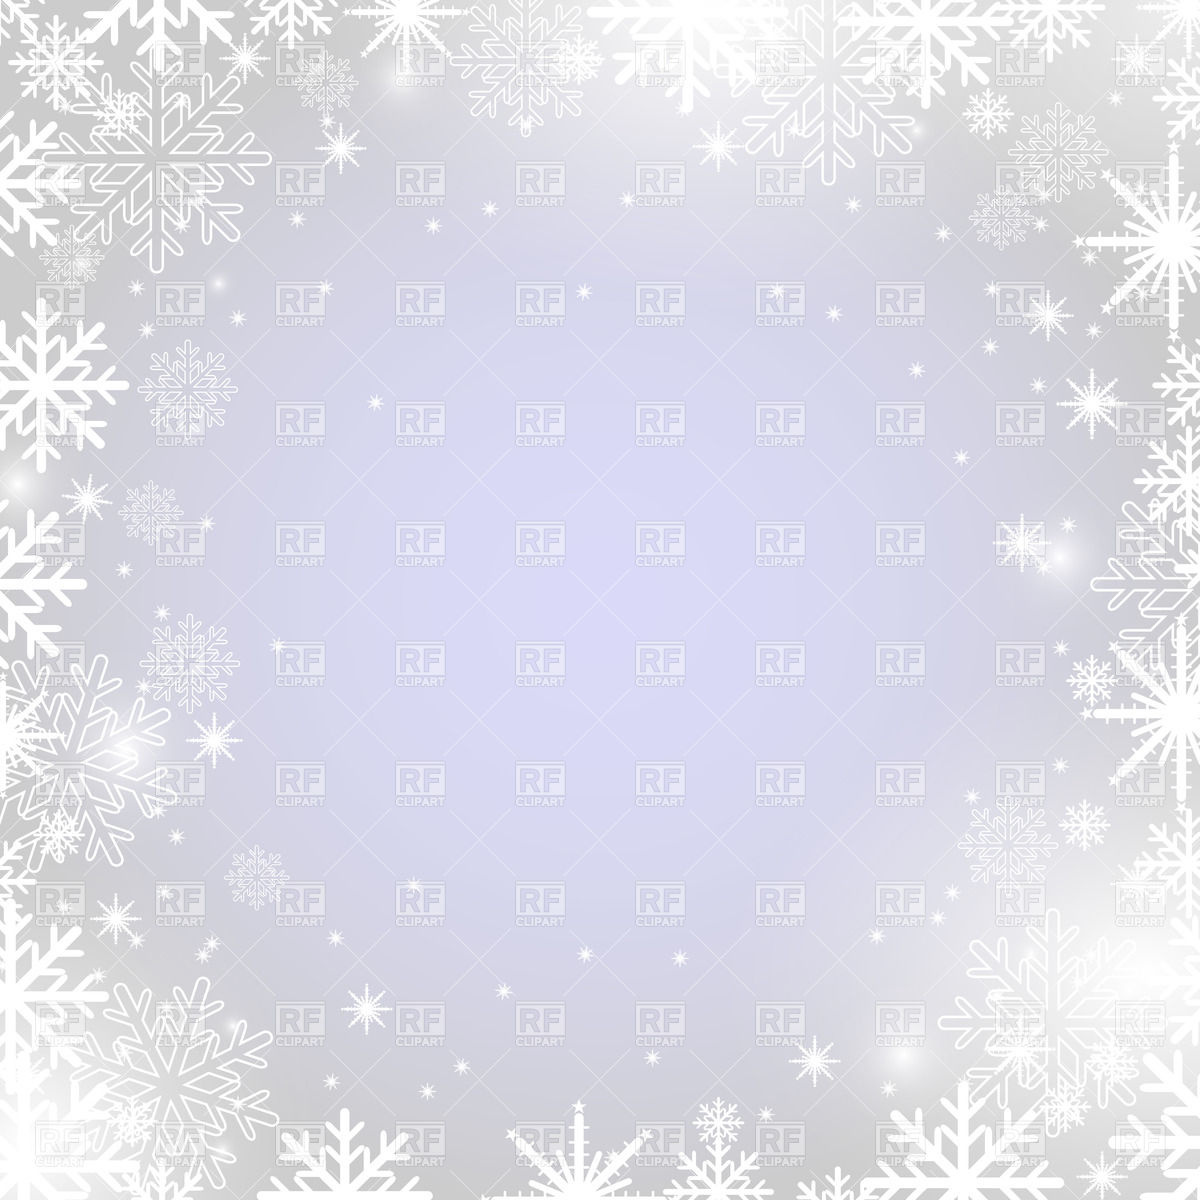 1200x1200 Winter Frame With Snowflakes Vector Image Vector Artwork Of